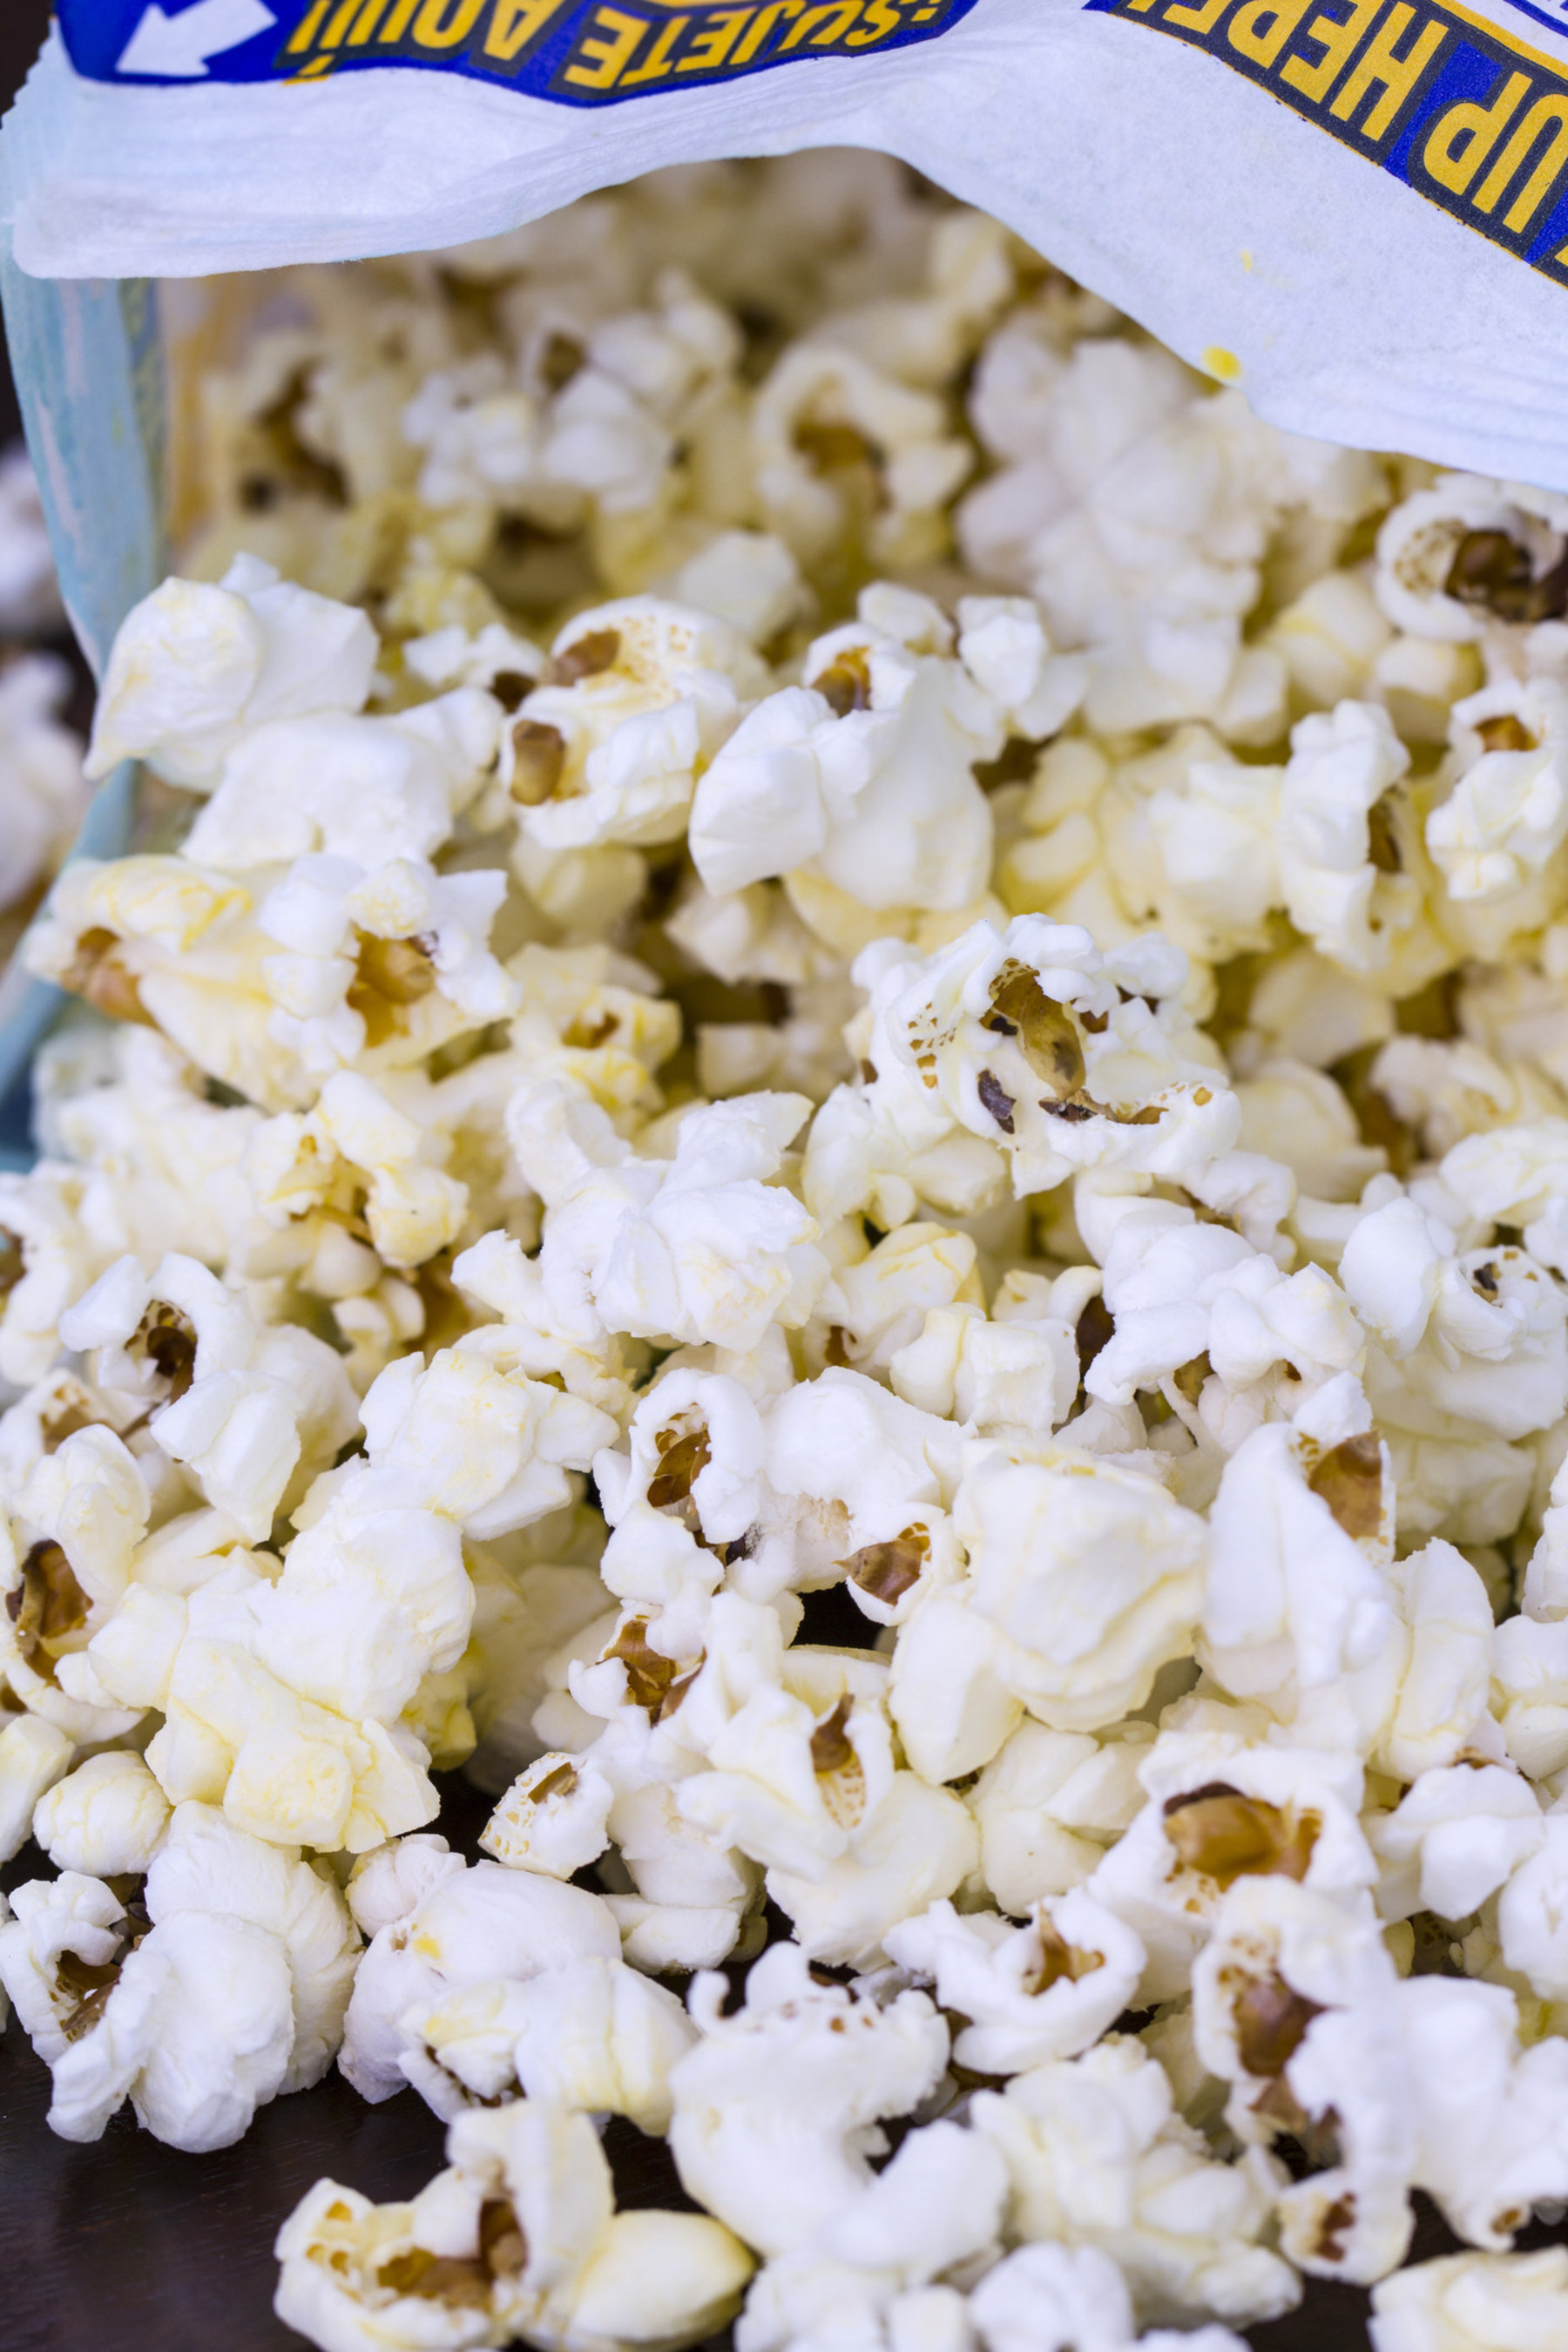 Verso Offers Microwave Popcorn Bag Producers an Attractive New Option with GlazeArmor(TM) Micro Papers